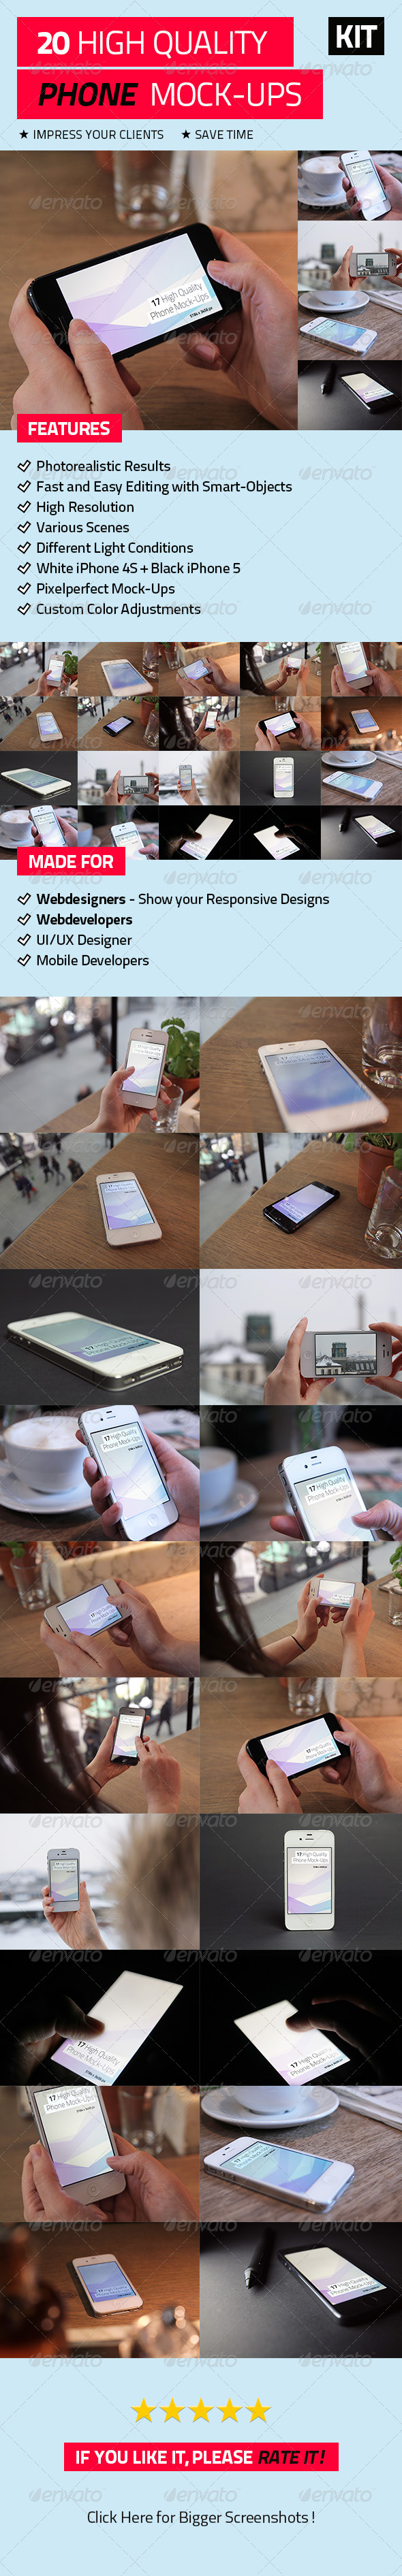 20 High Quality Phone Mock-Ups - Mobile Displays